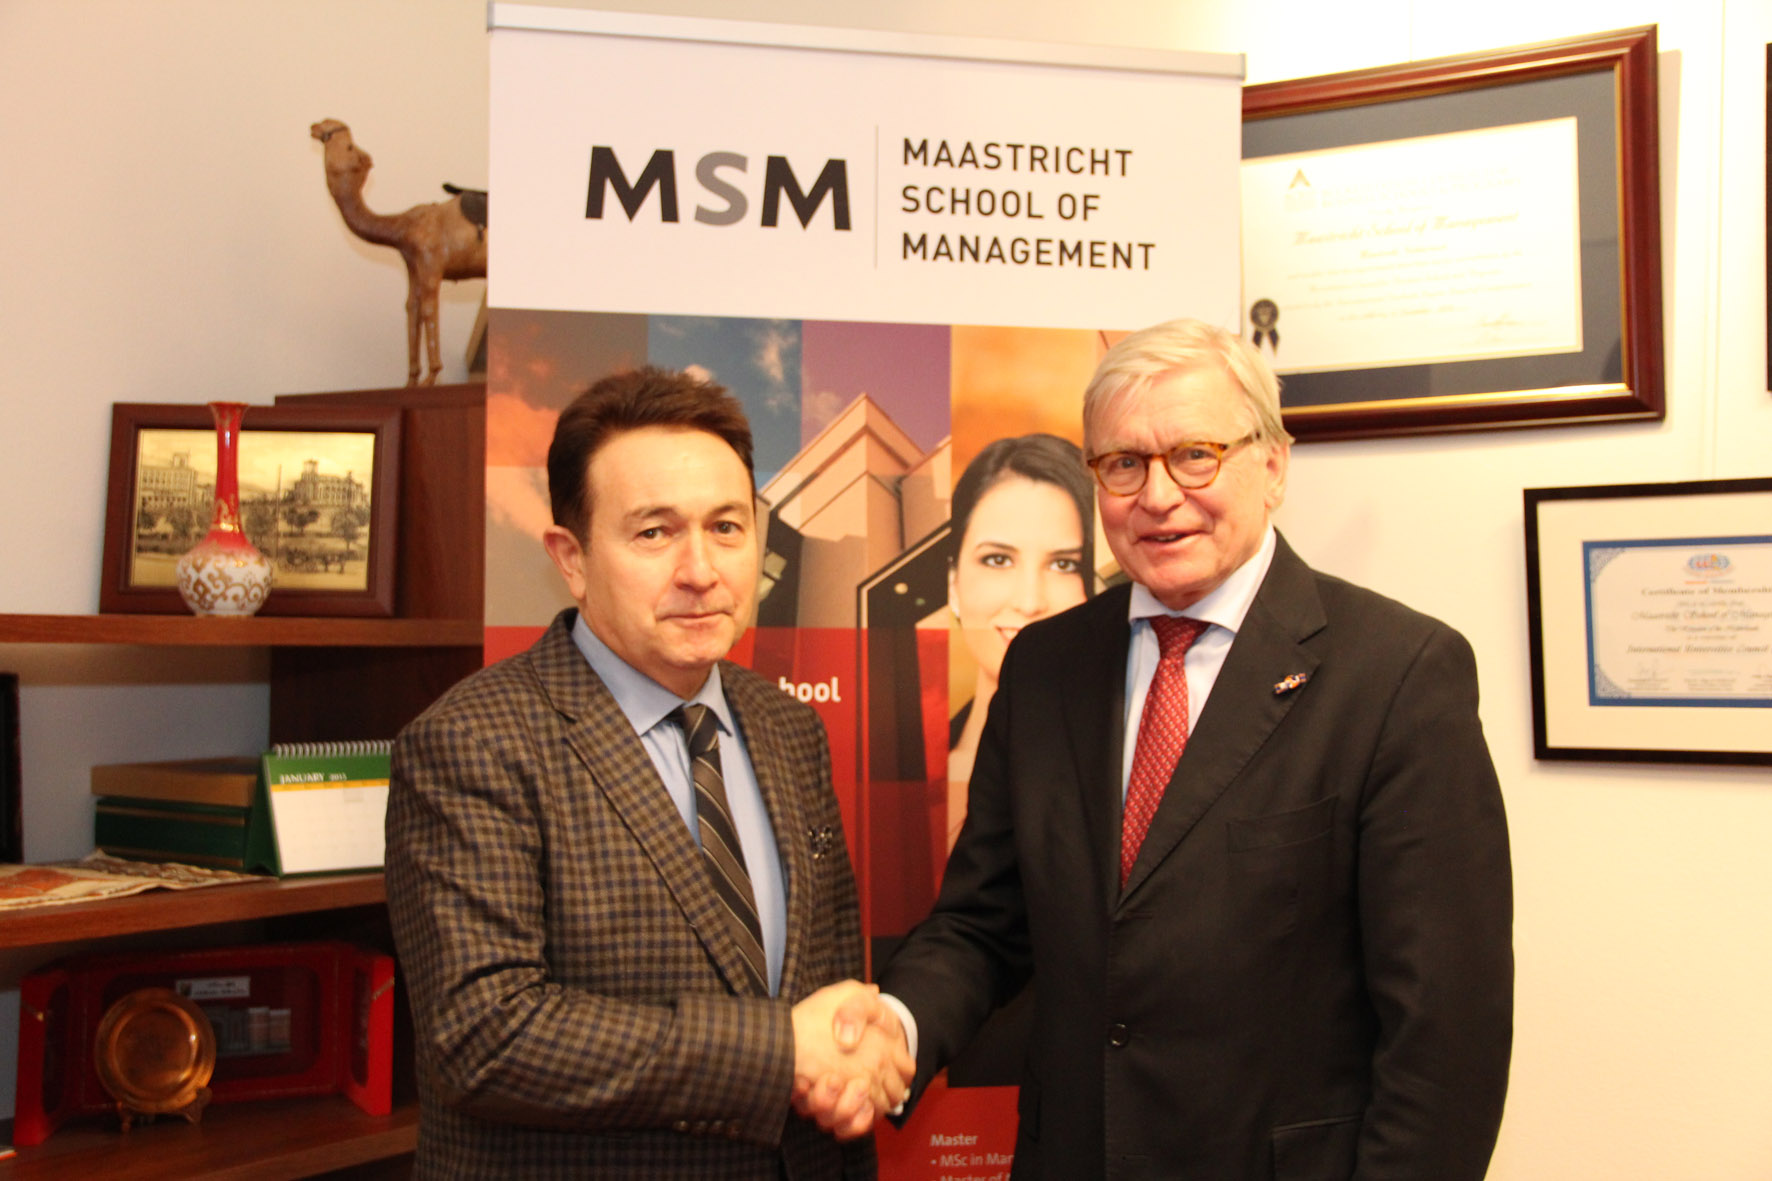 MoU signed with Maastricht School of Management